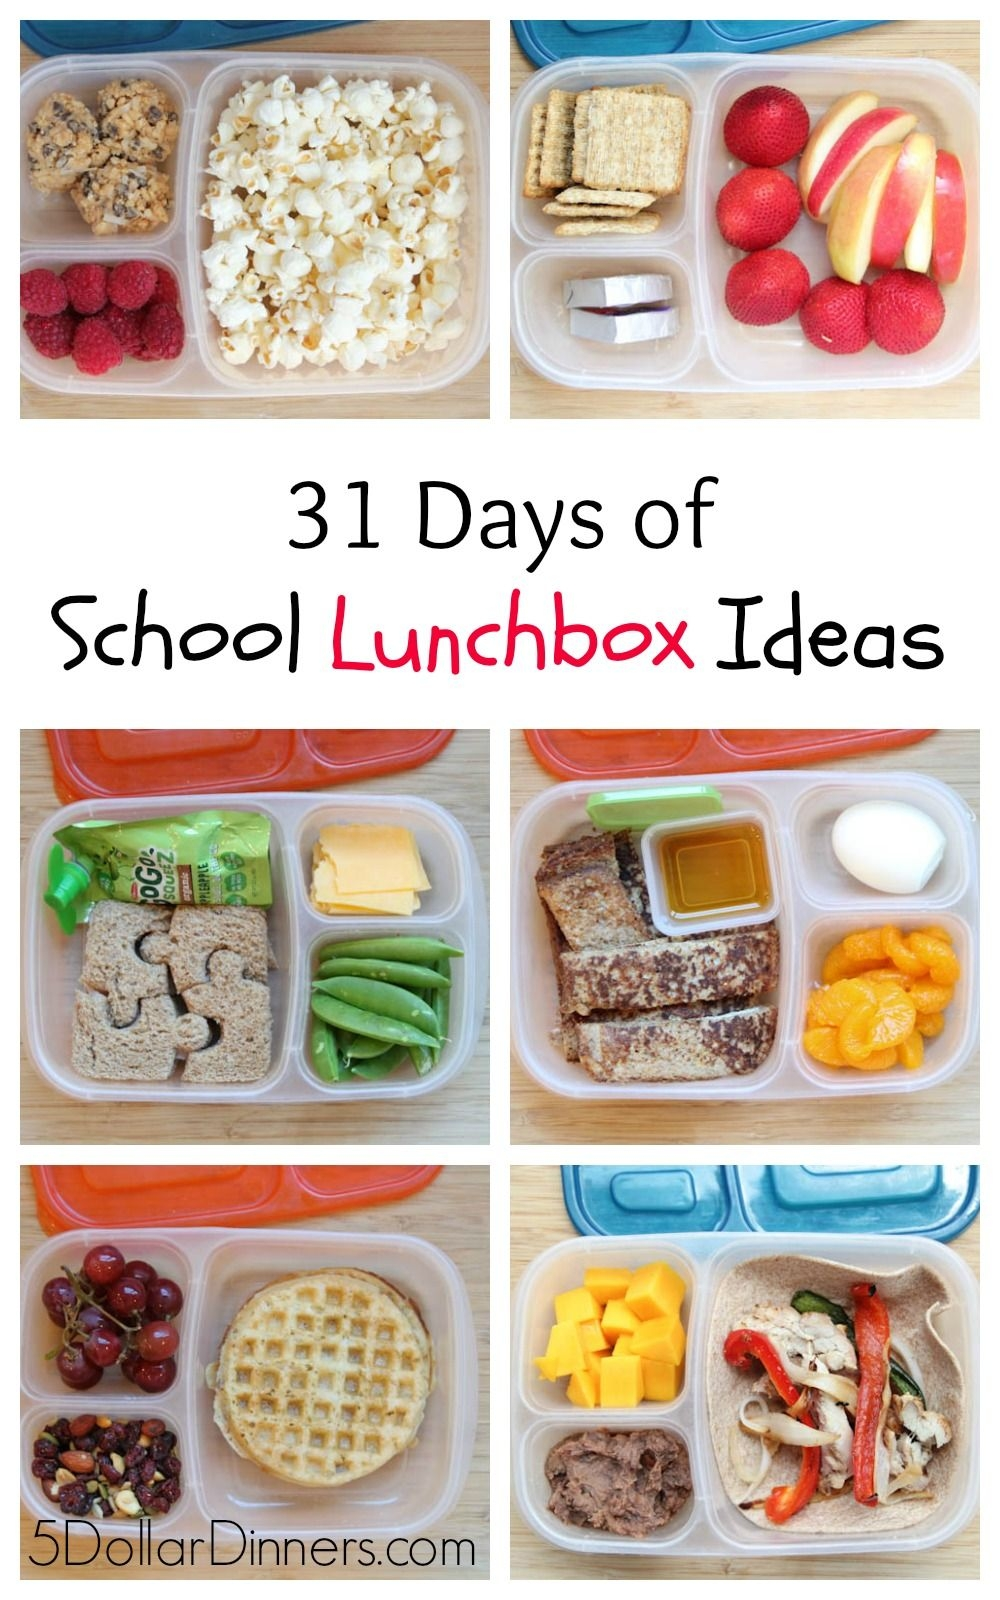 31 Days Of School Lunchbox Ideas - $5 Dinners | Recipes